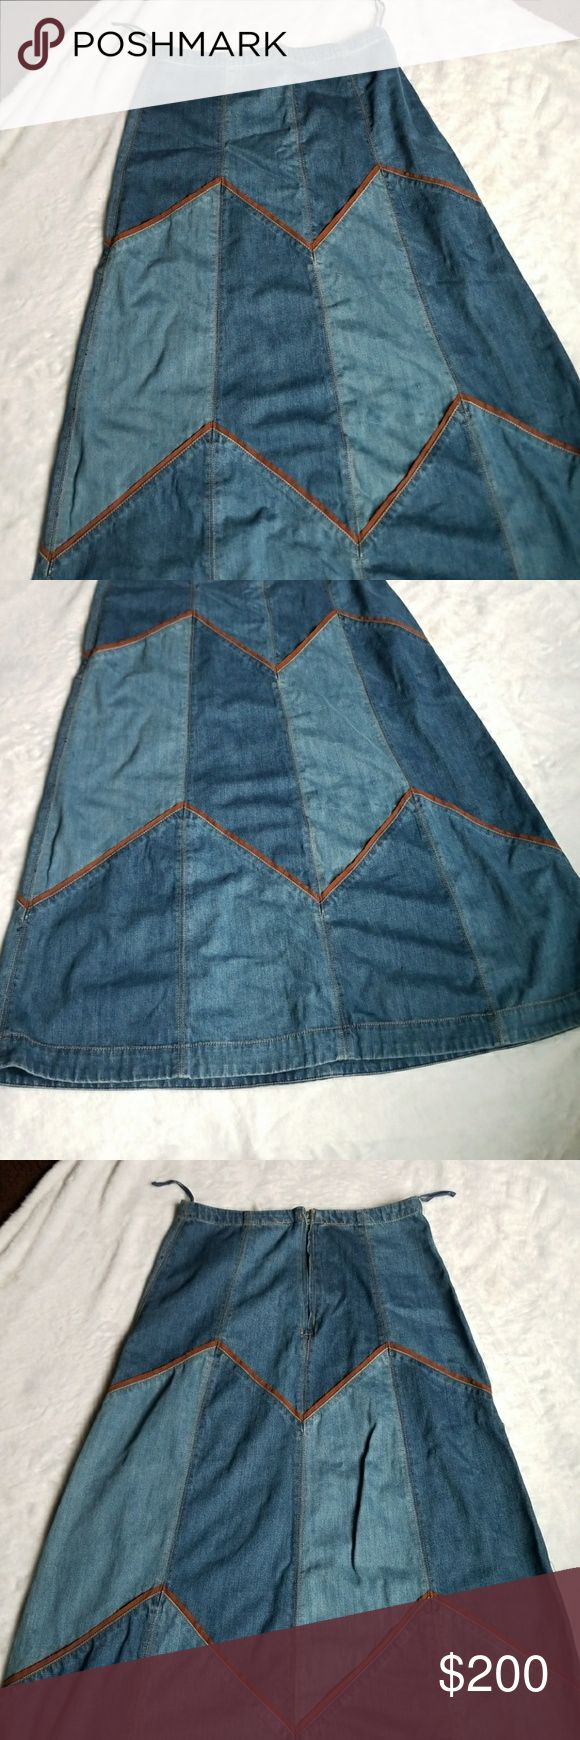 """NWOT Free People Maxi Denim Skirt Sz 12 NWOTFree People Bliss Made A-line Denim Jean Maxi Skirt  Super cute and brand new! Want to save more? Bundle and save on shipping. Measurements:  Length: 38"""" Waist: 15"""" Leg Opening: 32""""  🌟 Smoke free home 🌟 Reasonable Offers Accepted  🌟 All items are recorded in condition listed prior to shipping Free People Skirts Maxi"""